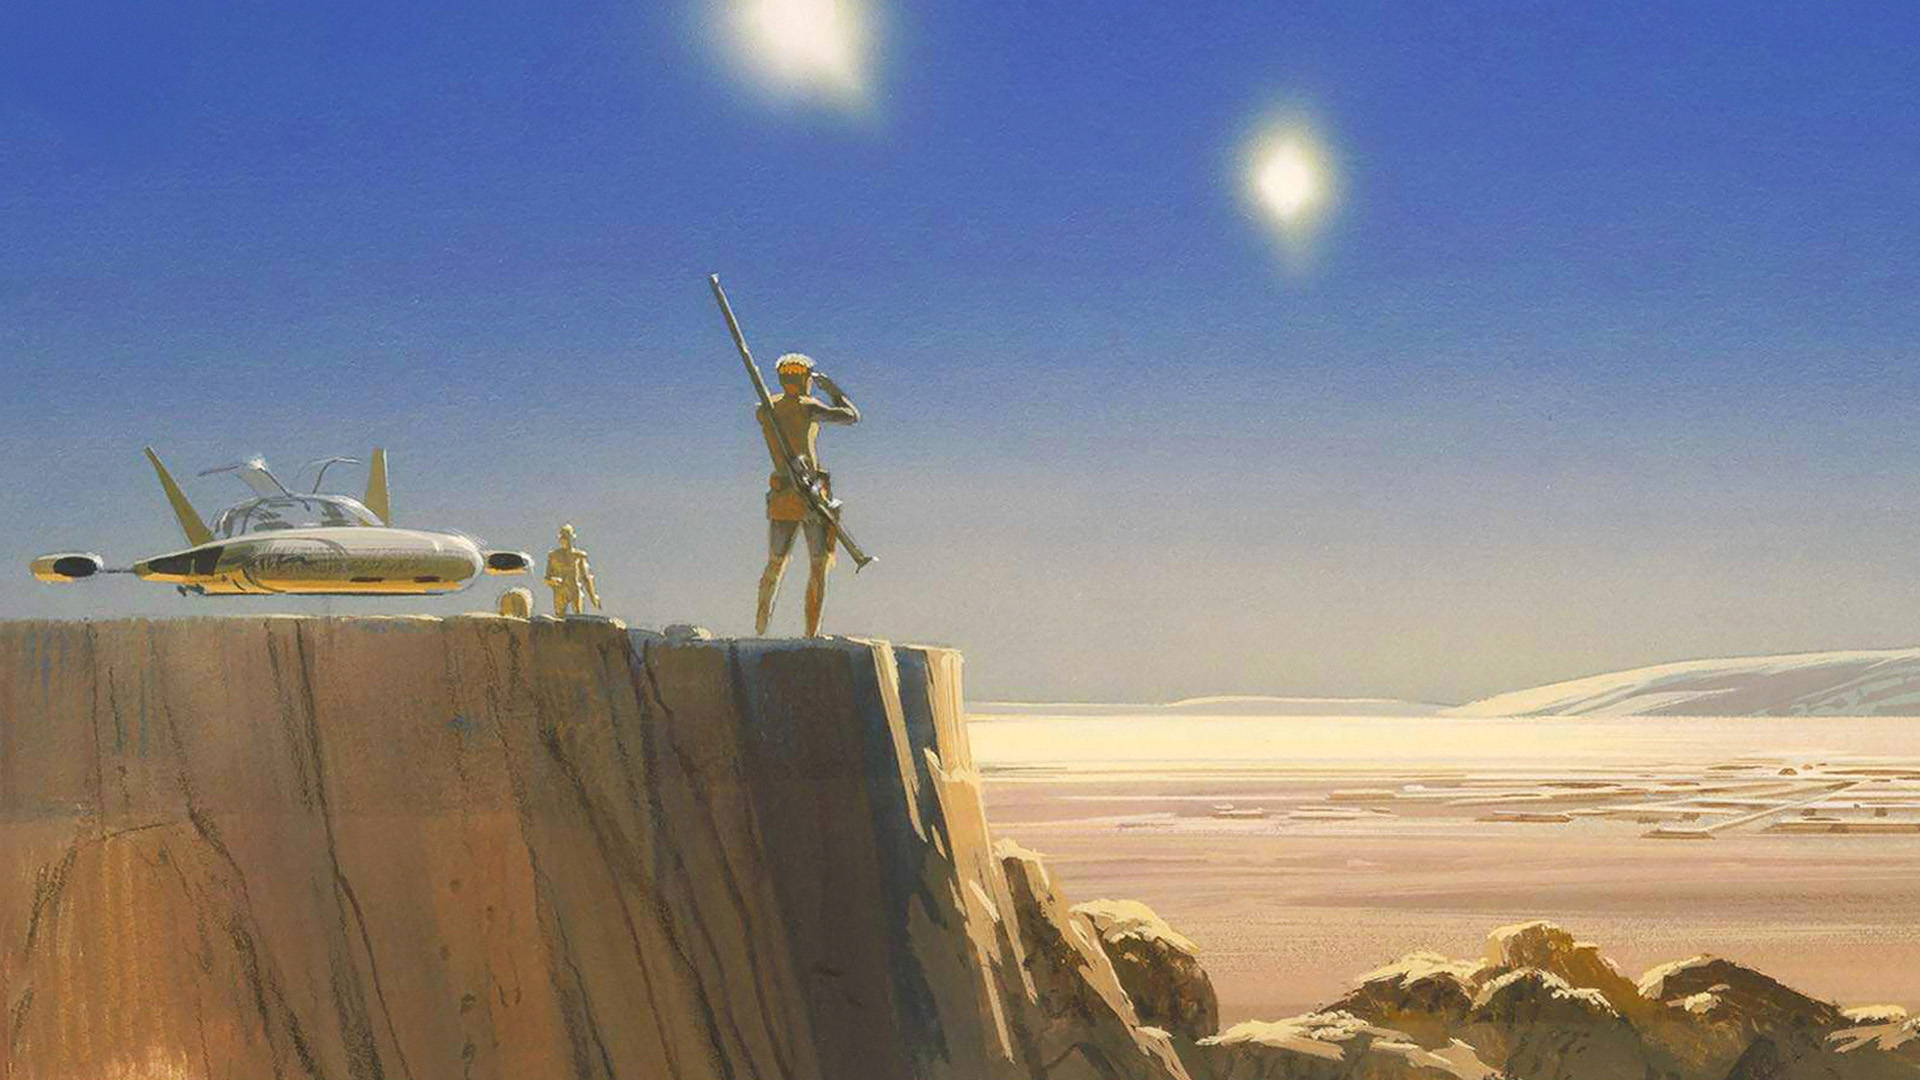 Star Wars Episode Iv A New Hope Wallpapers Pictures Images